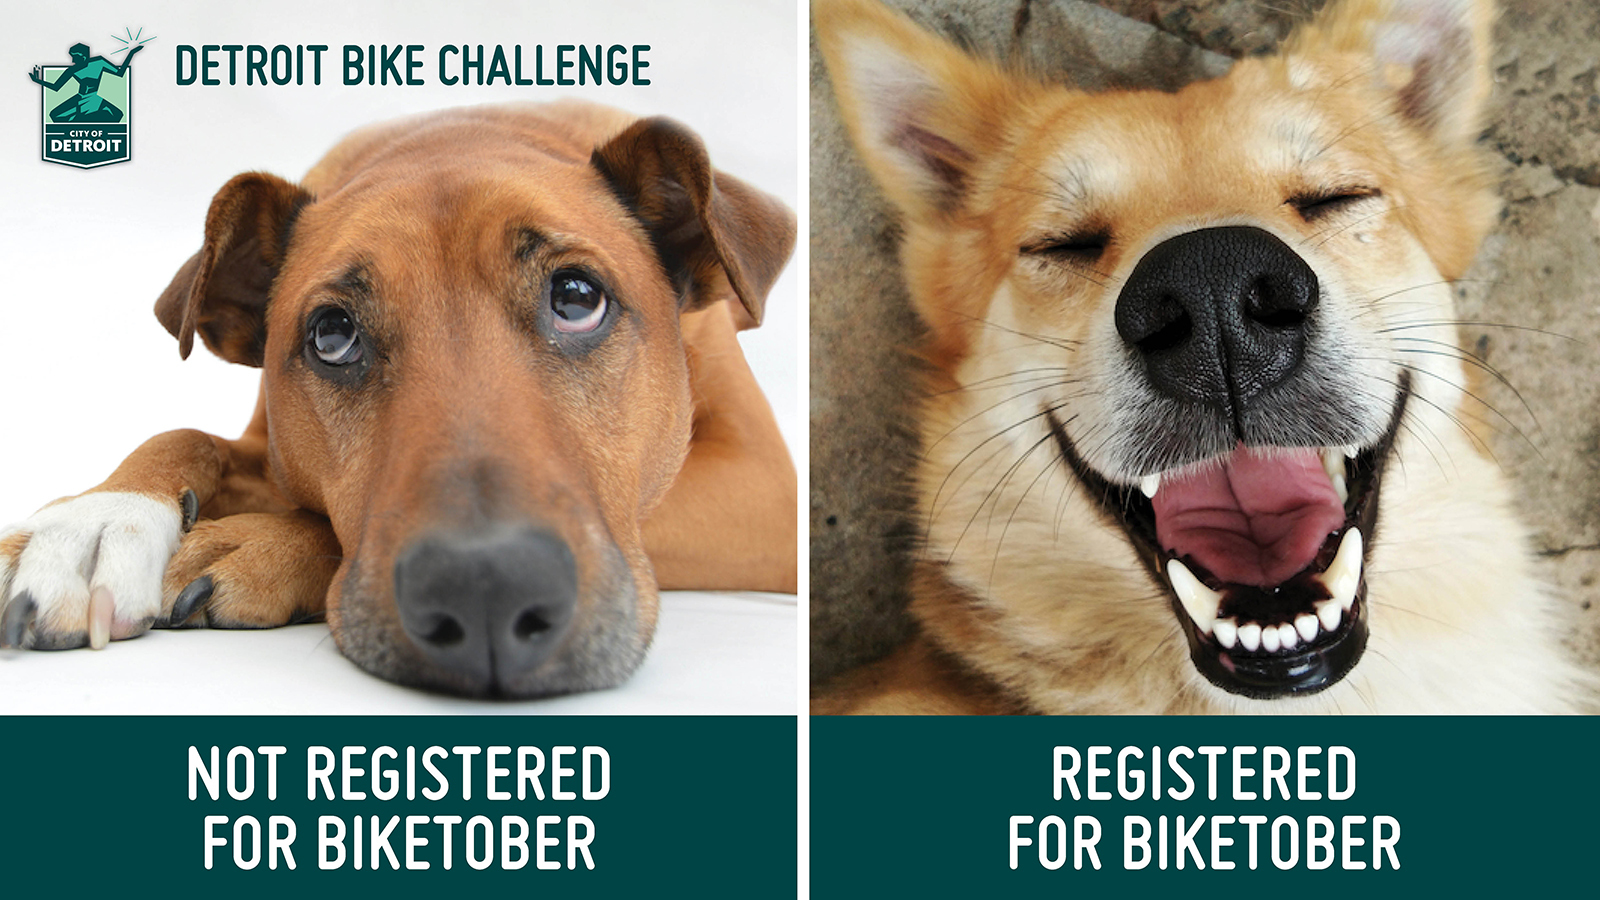 """On the left, a sad looking dog with the text """"Not registered for Biketober"""". On the right, a happy looking dog with the text """"Registered for Biketober"""""""